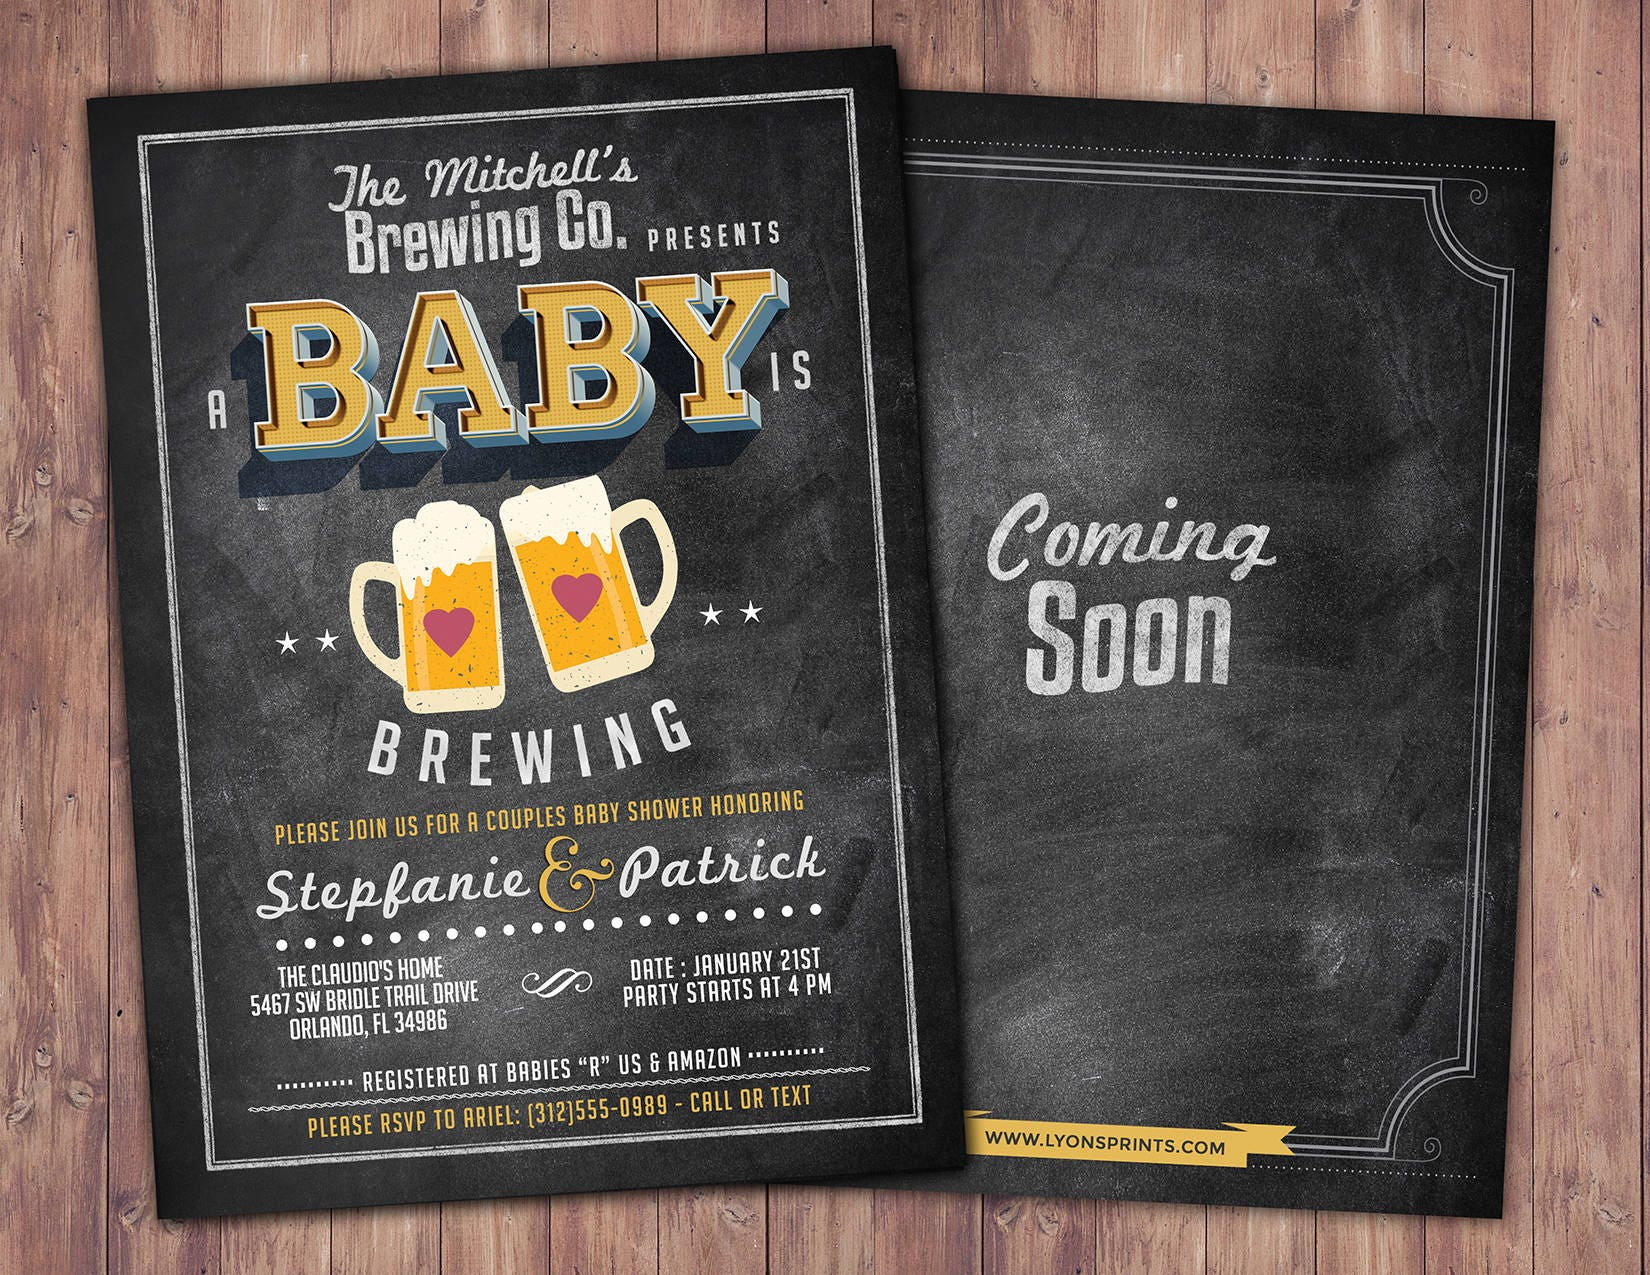 Baby is brewing, Coed baby shower invitation- Beer baby shower ...